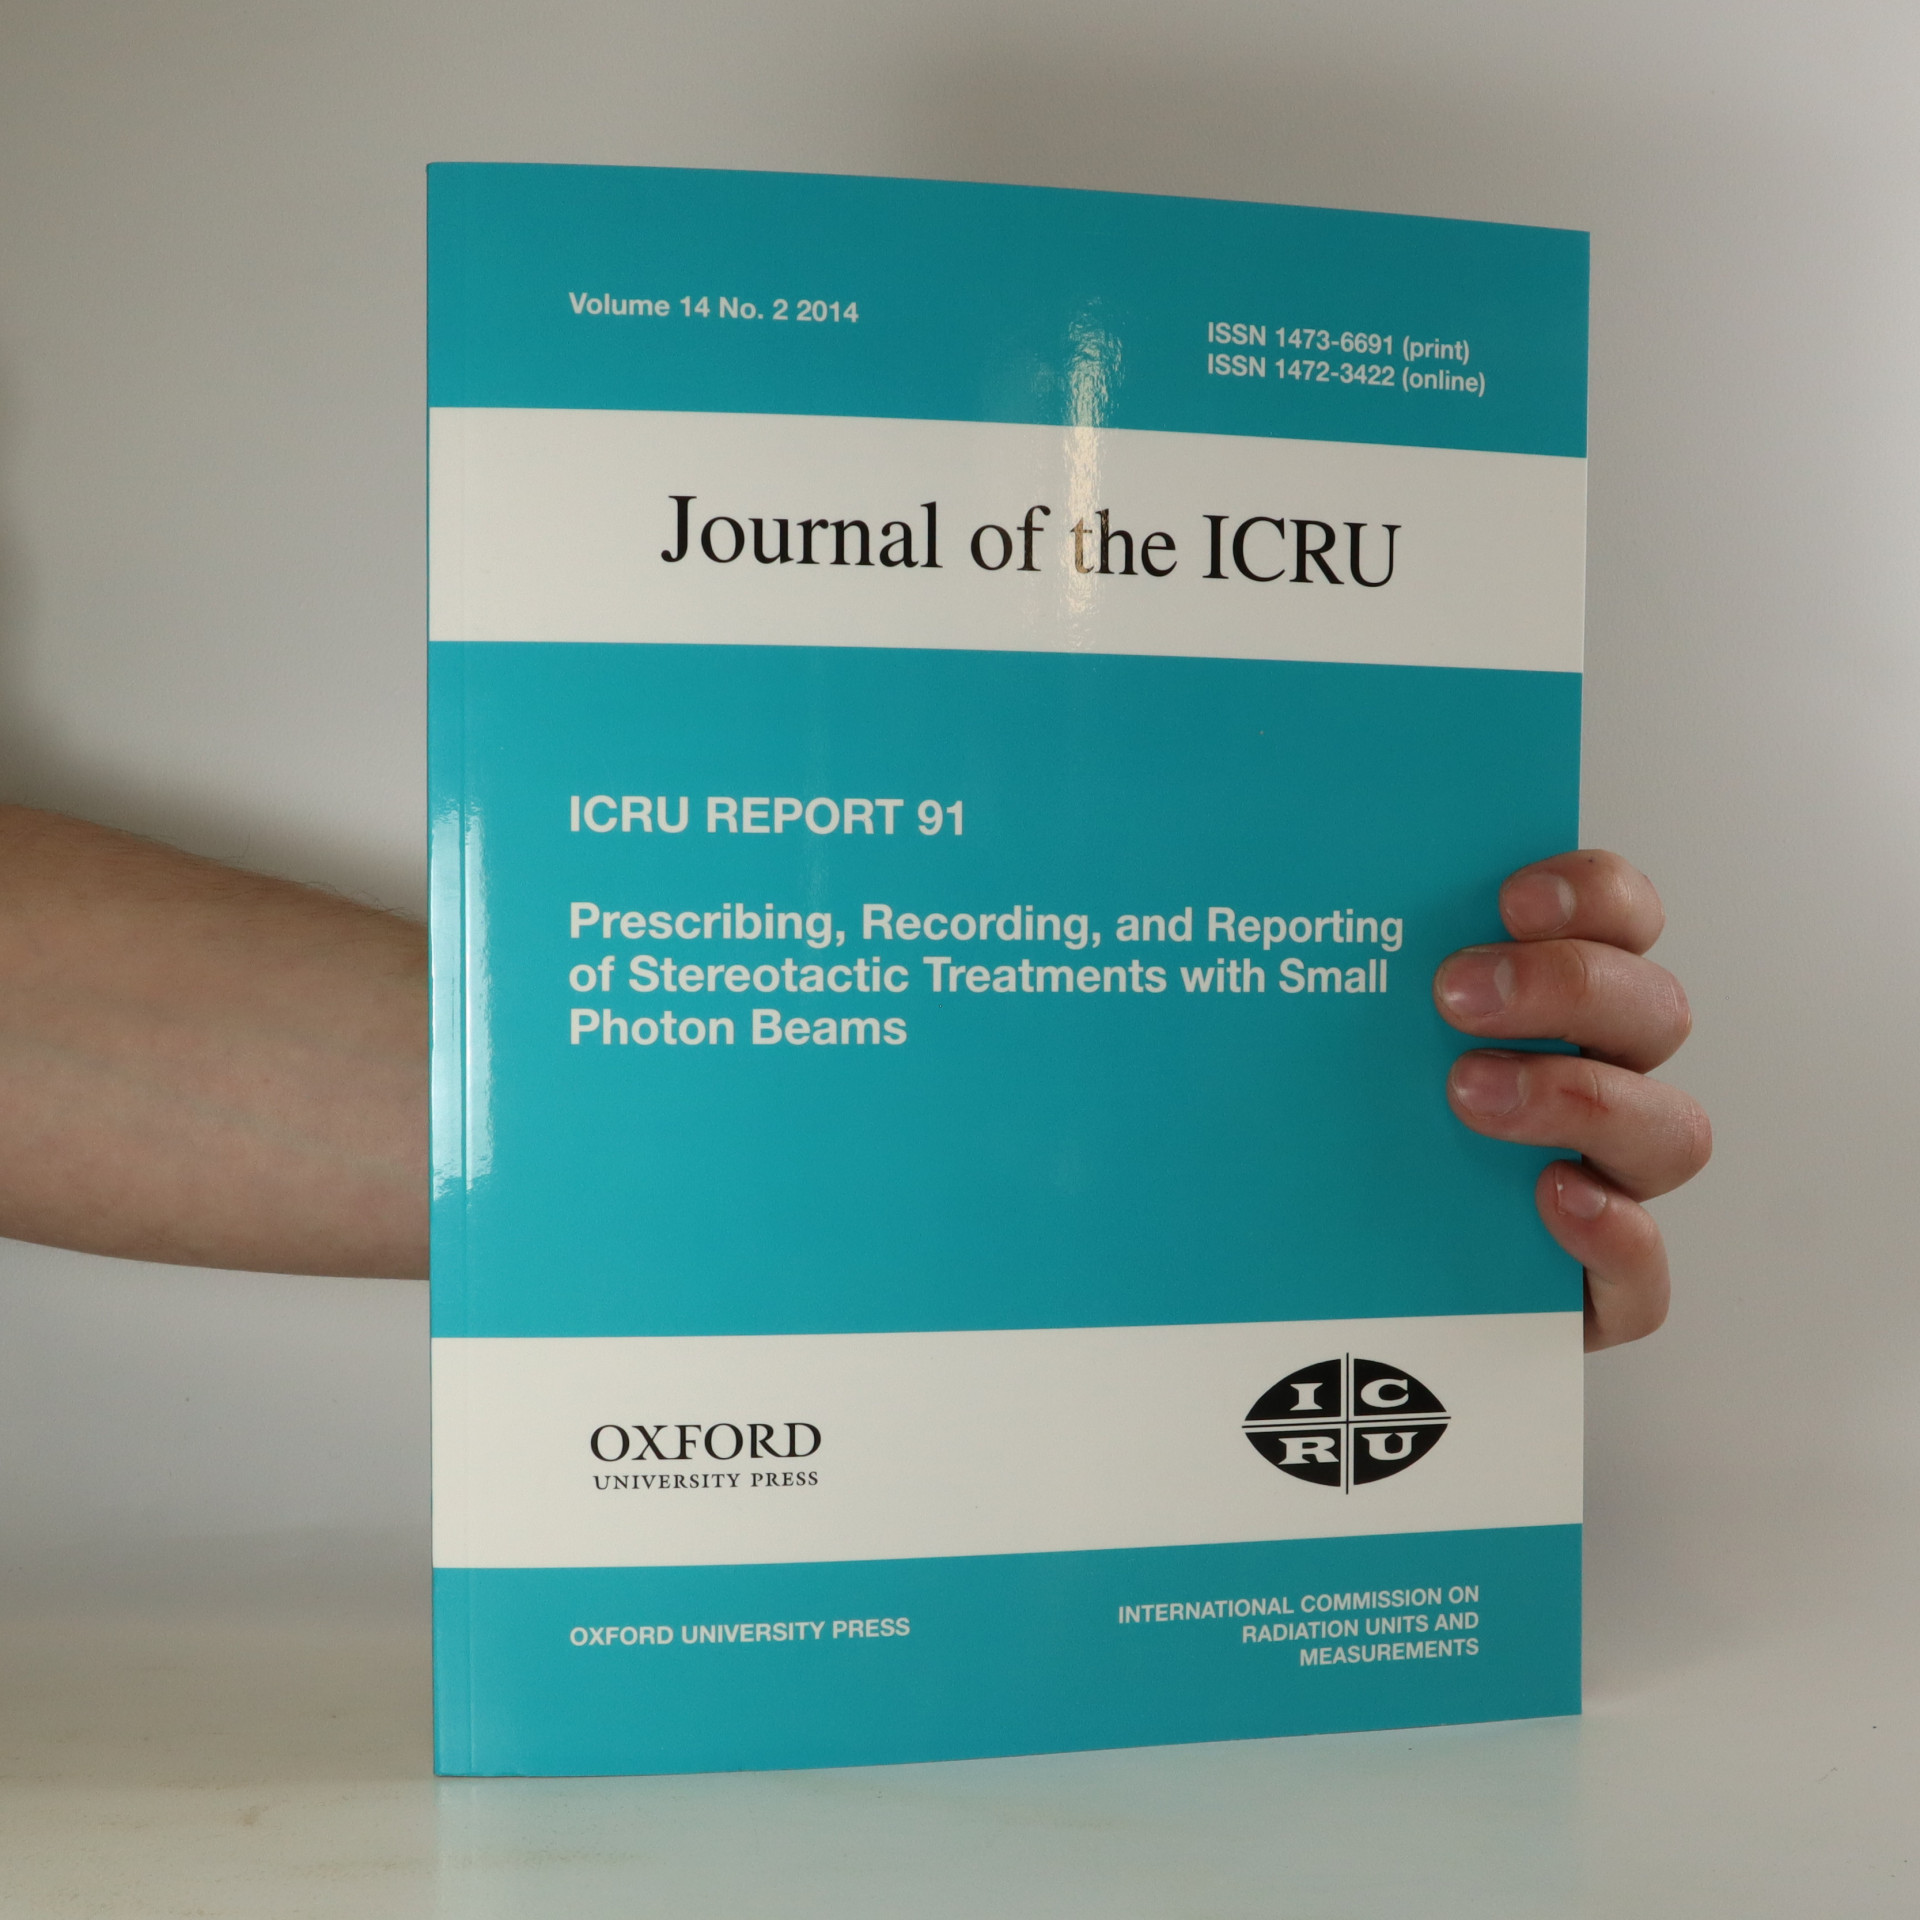 antikvární kniha Journal of the ICRU, neuveden